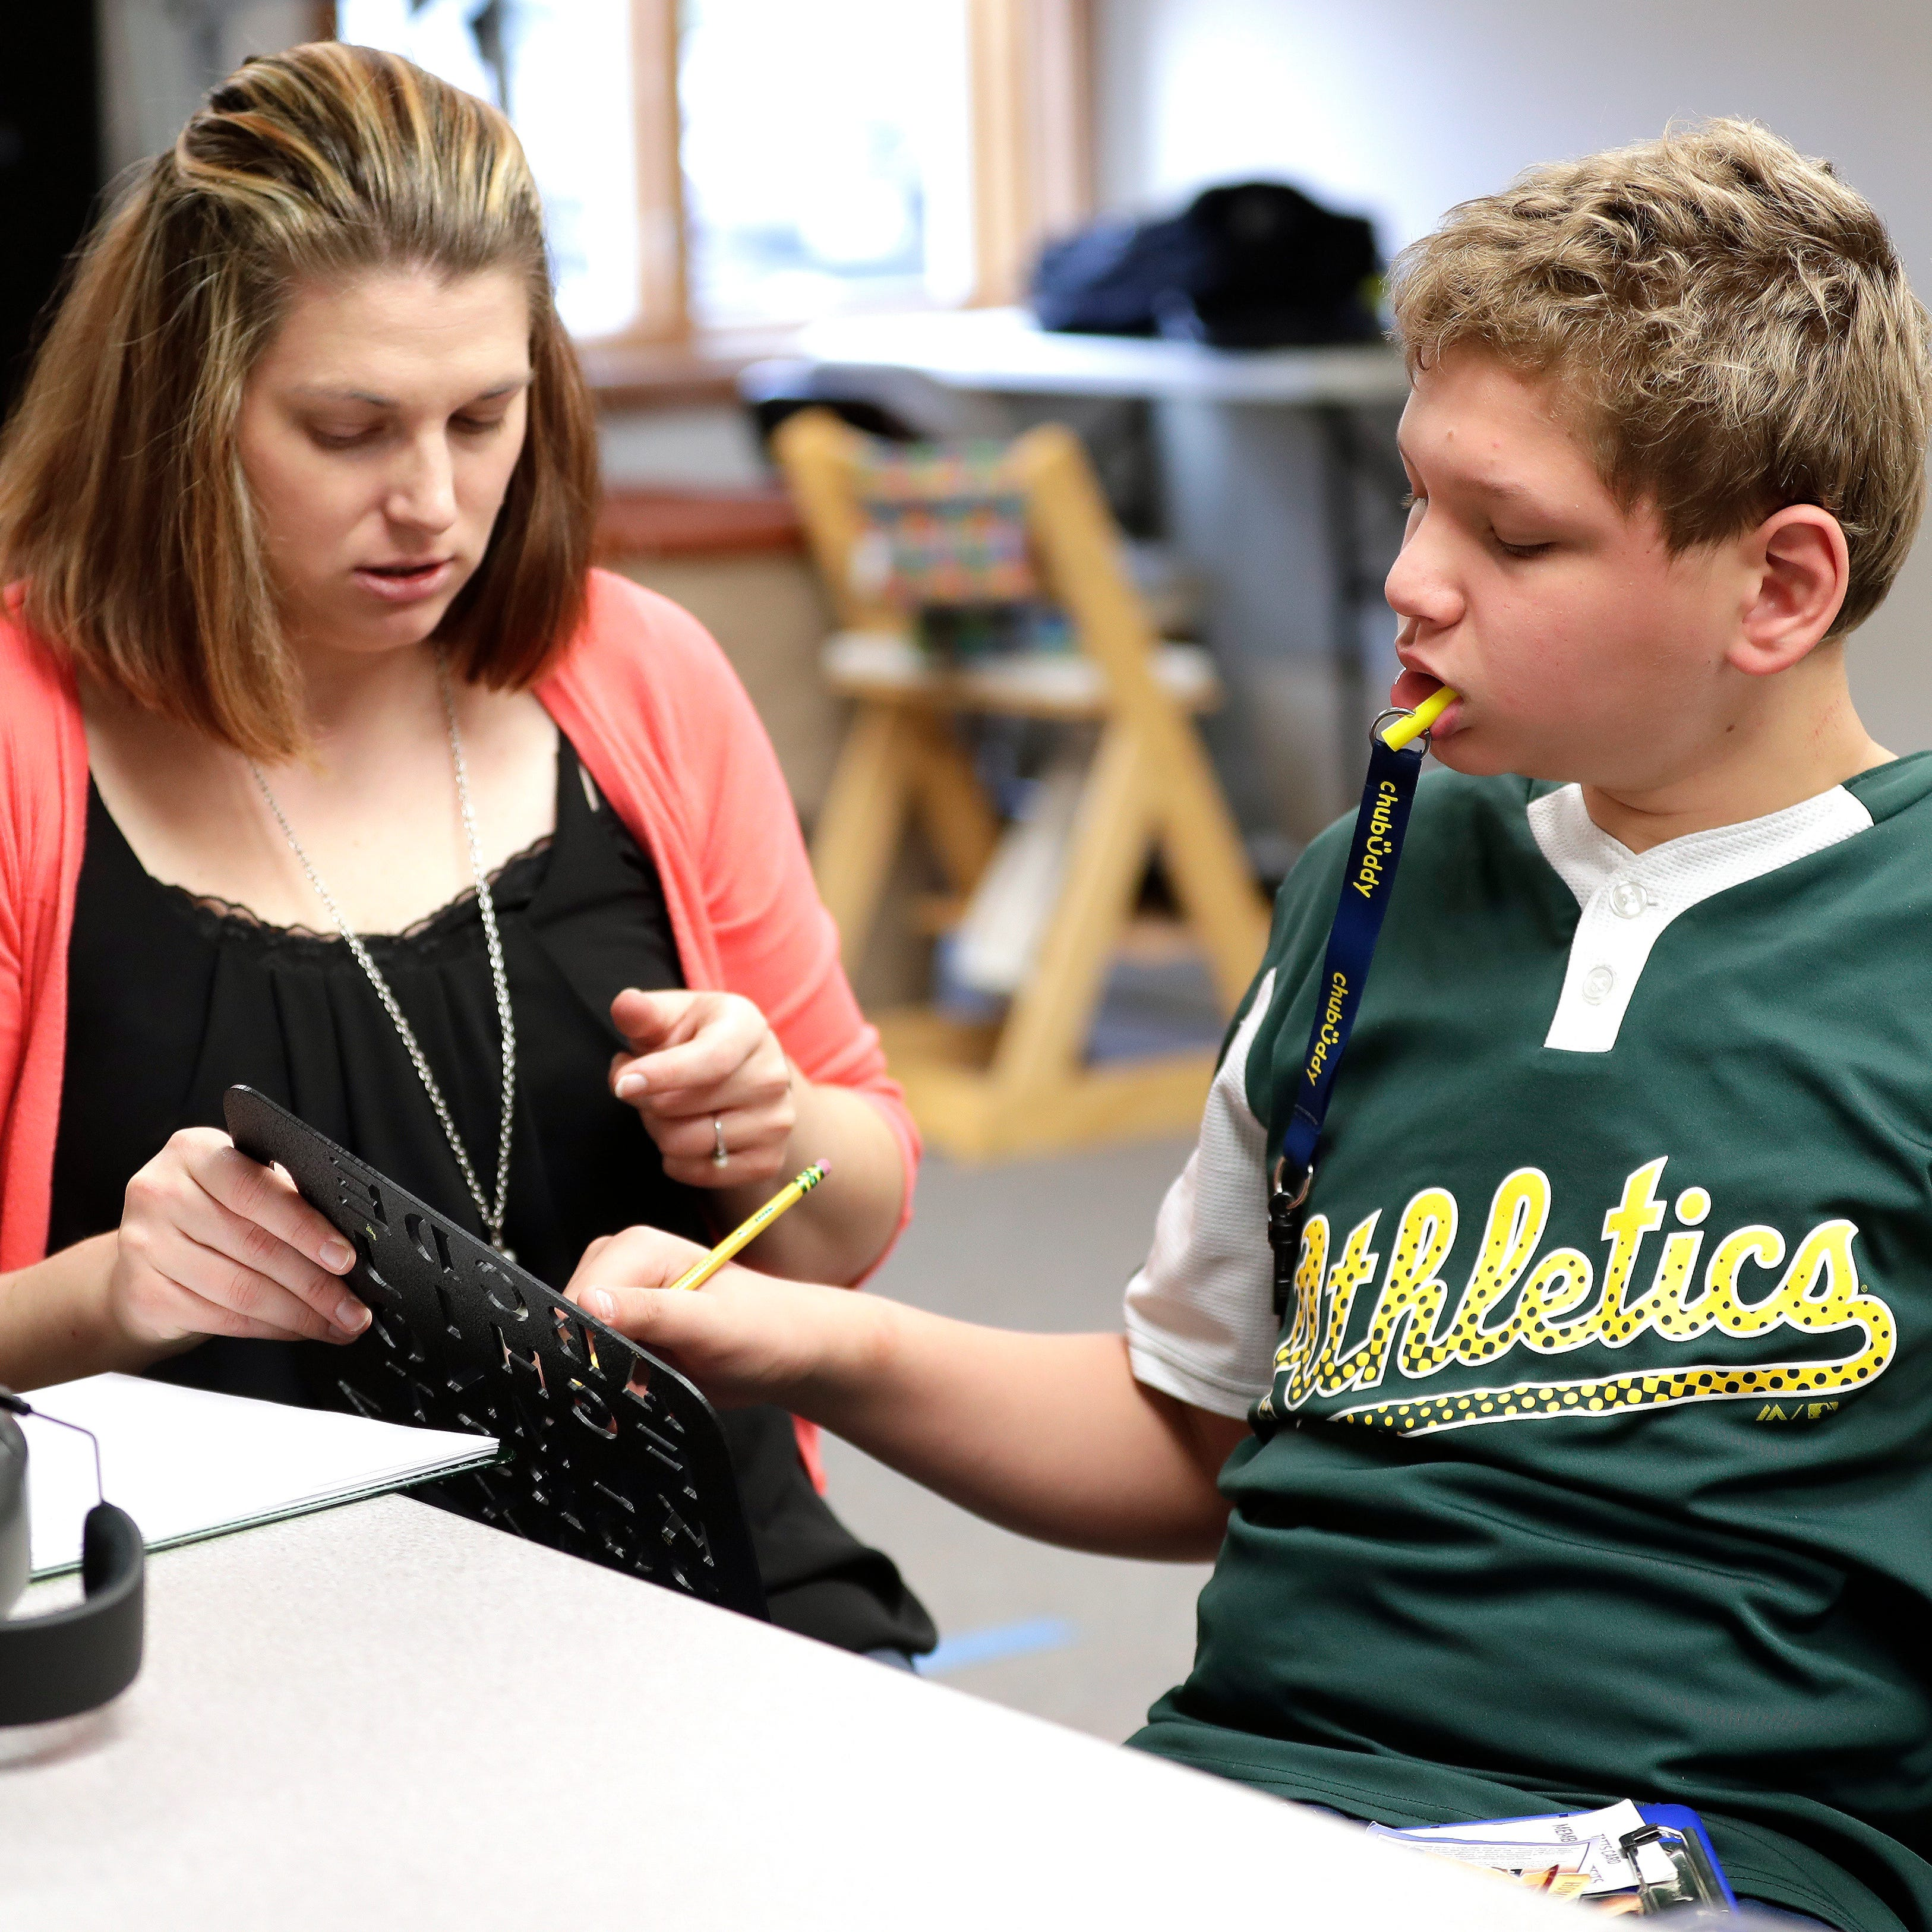 From Australia to Green Bay, family moves to help autistic son with one-of-a-kind school